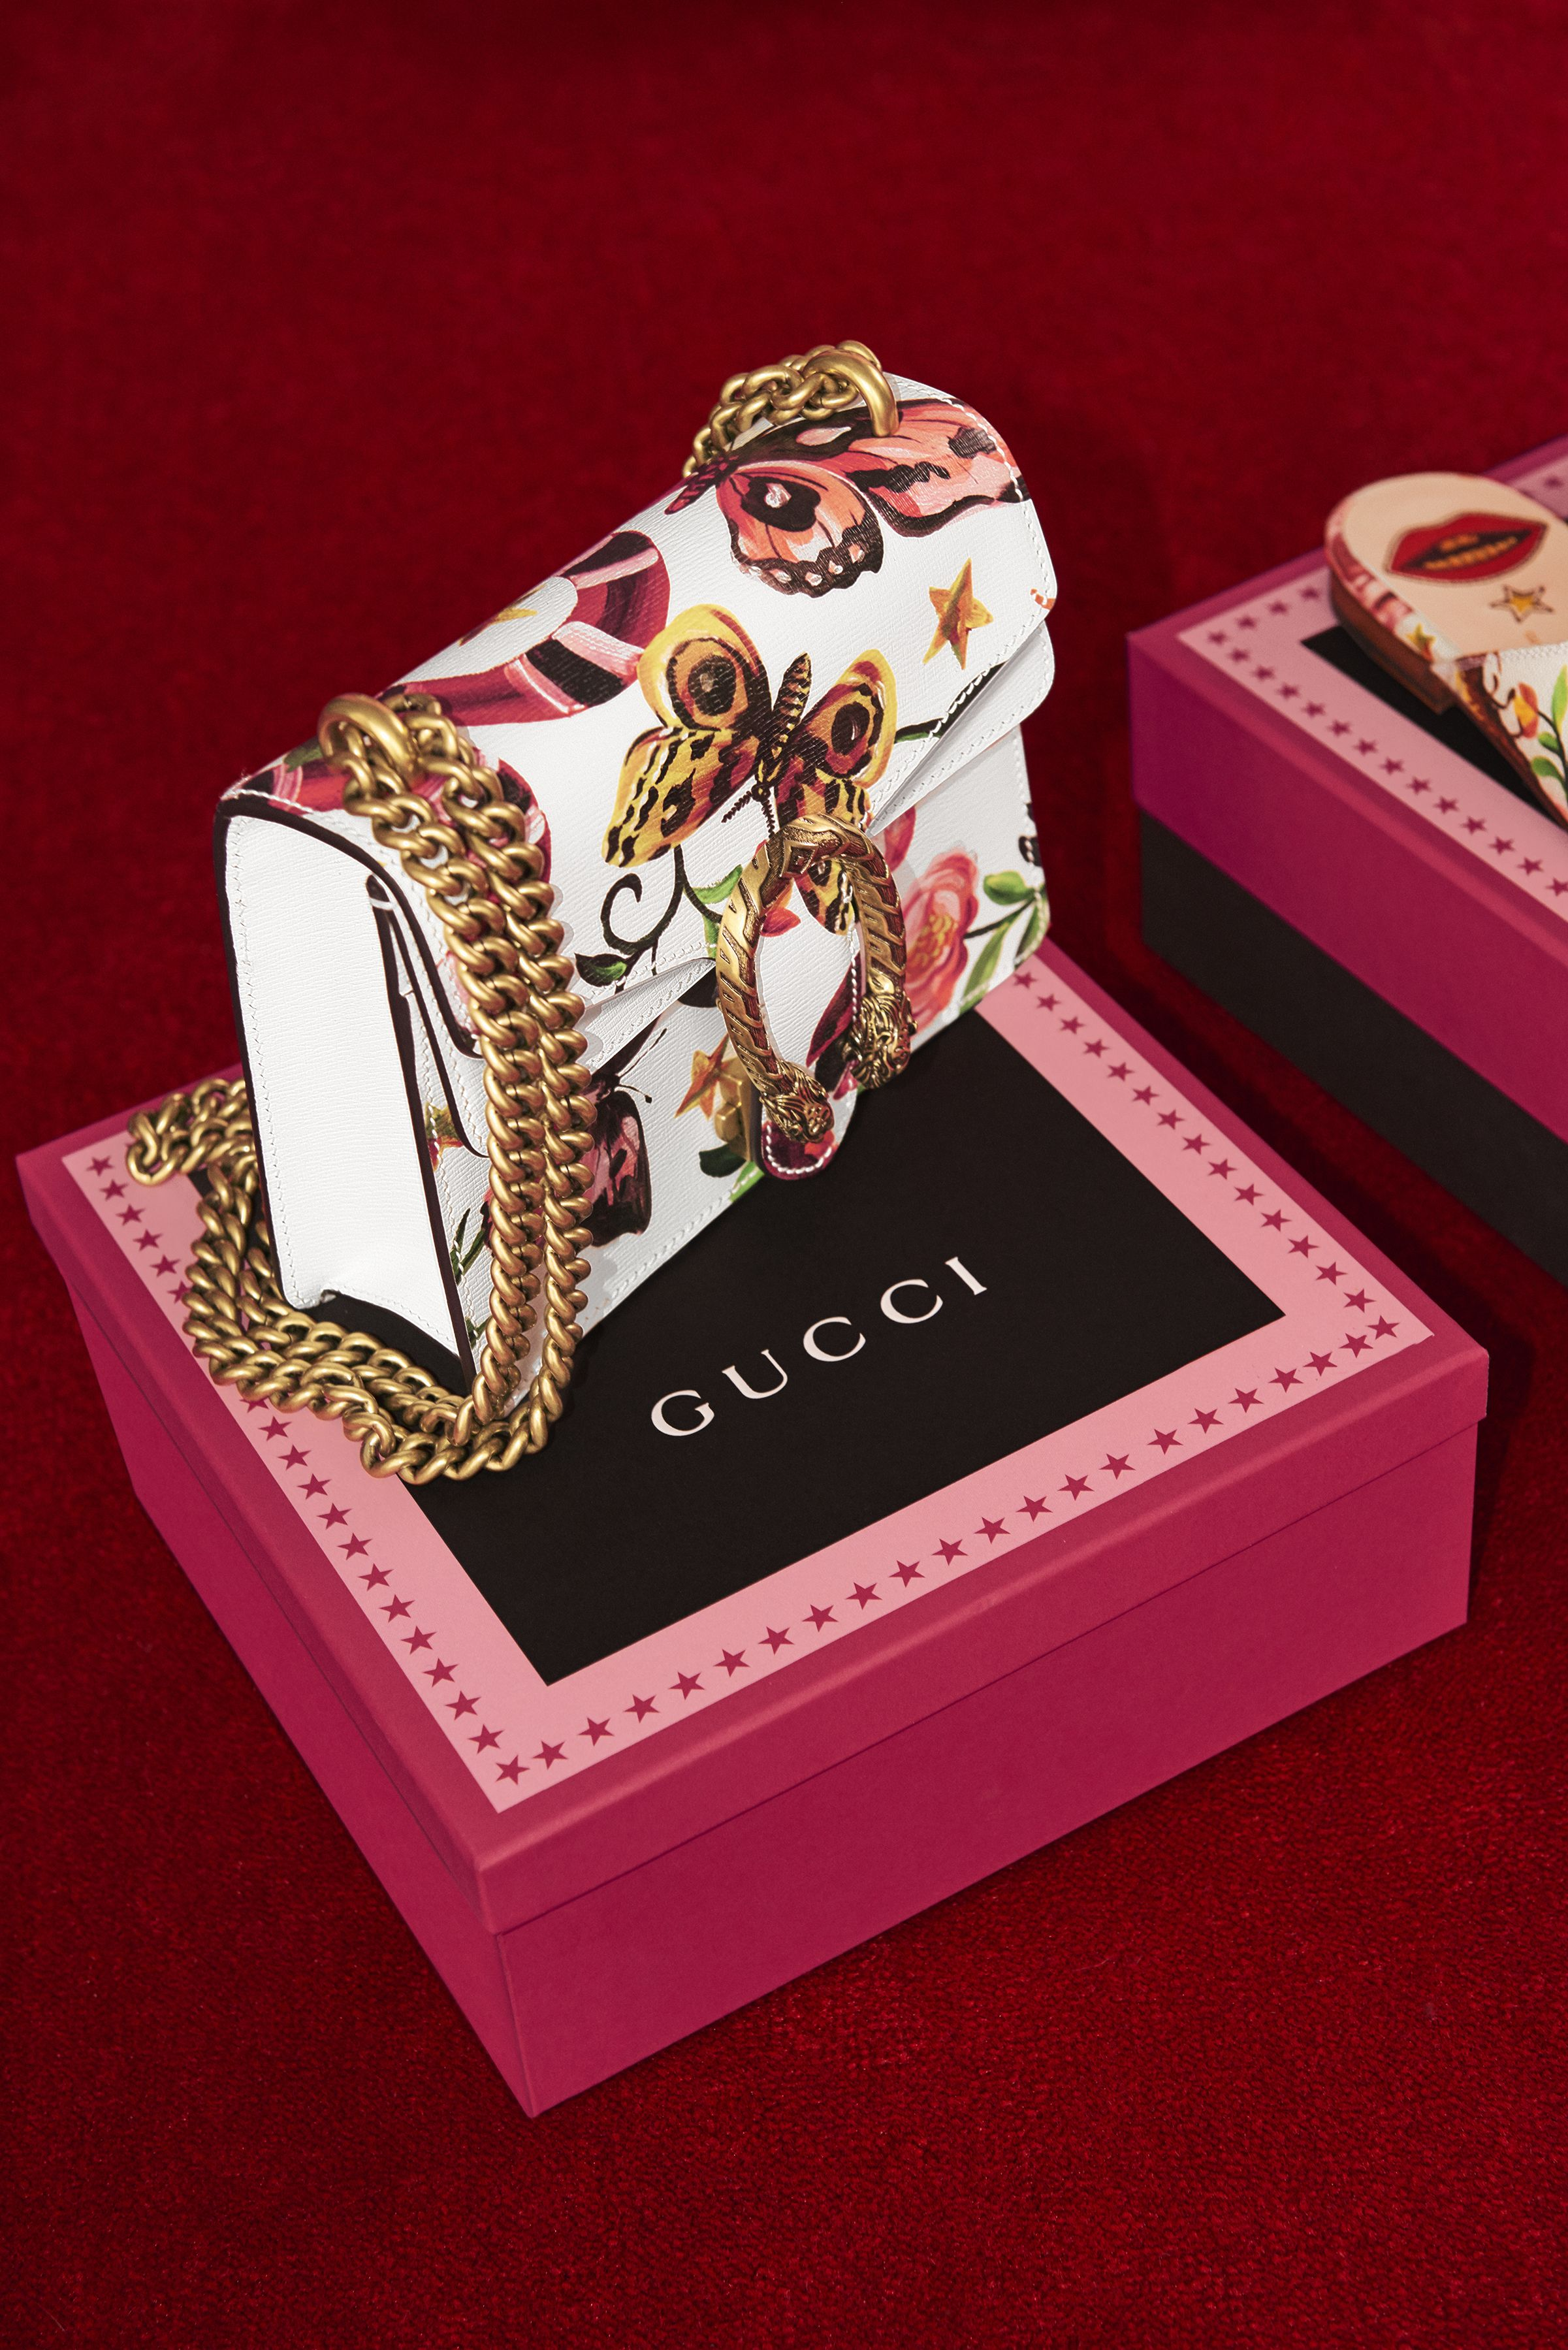 cf4edecc443 The Dionysus mini bag in leather is introduced with the Gucci Garden print